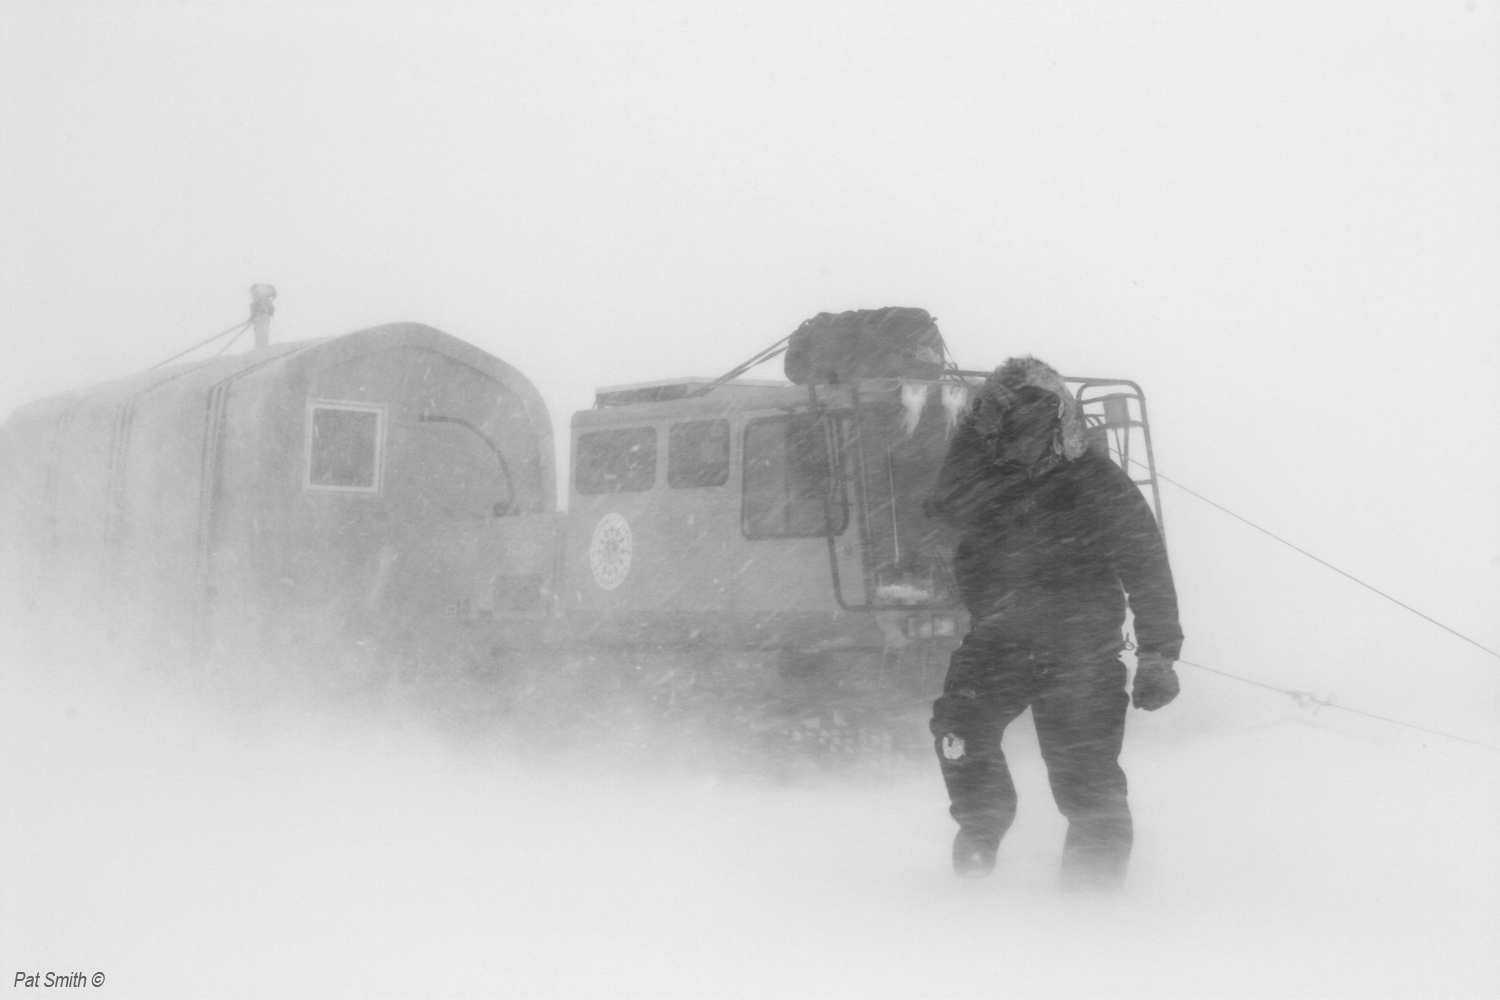 This image, taken in June 2008 in Greenland, illustrates the severity of some Arctic storms. The GrIT storm recently encountered one white-out day that temporarily hampered forward progress. Photo: Pat Smith